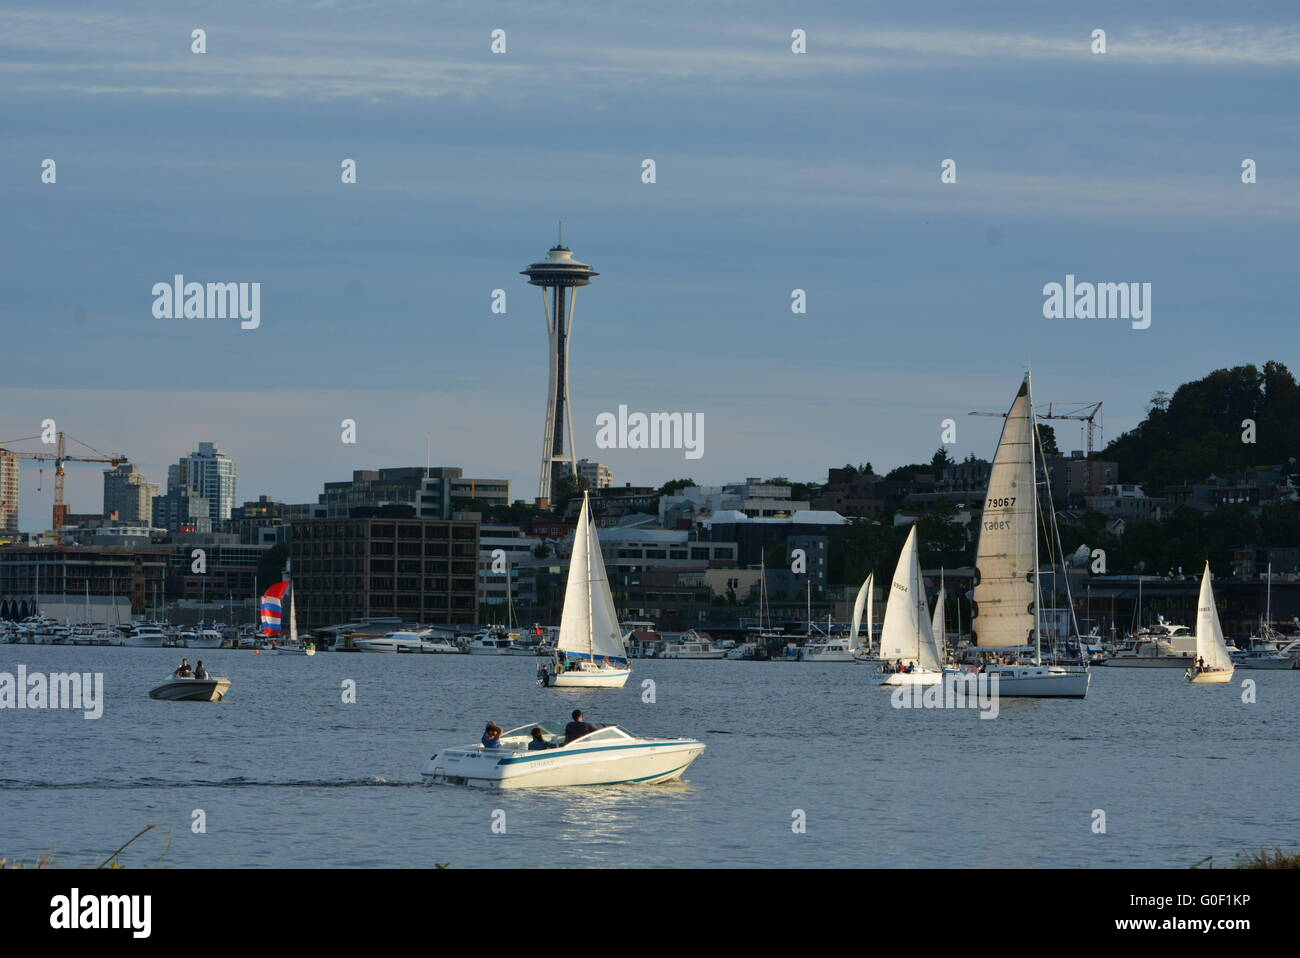 A day on Lake Union in Seattle, Washington - Stock Image